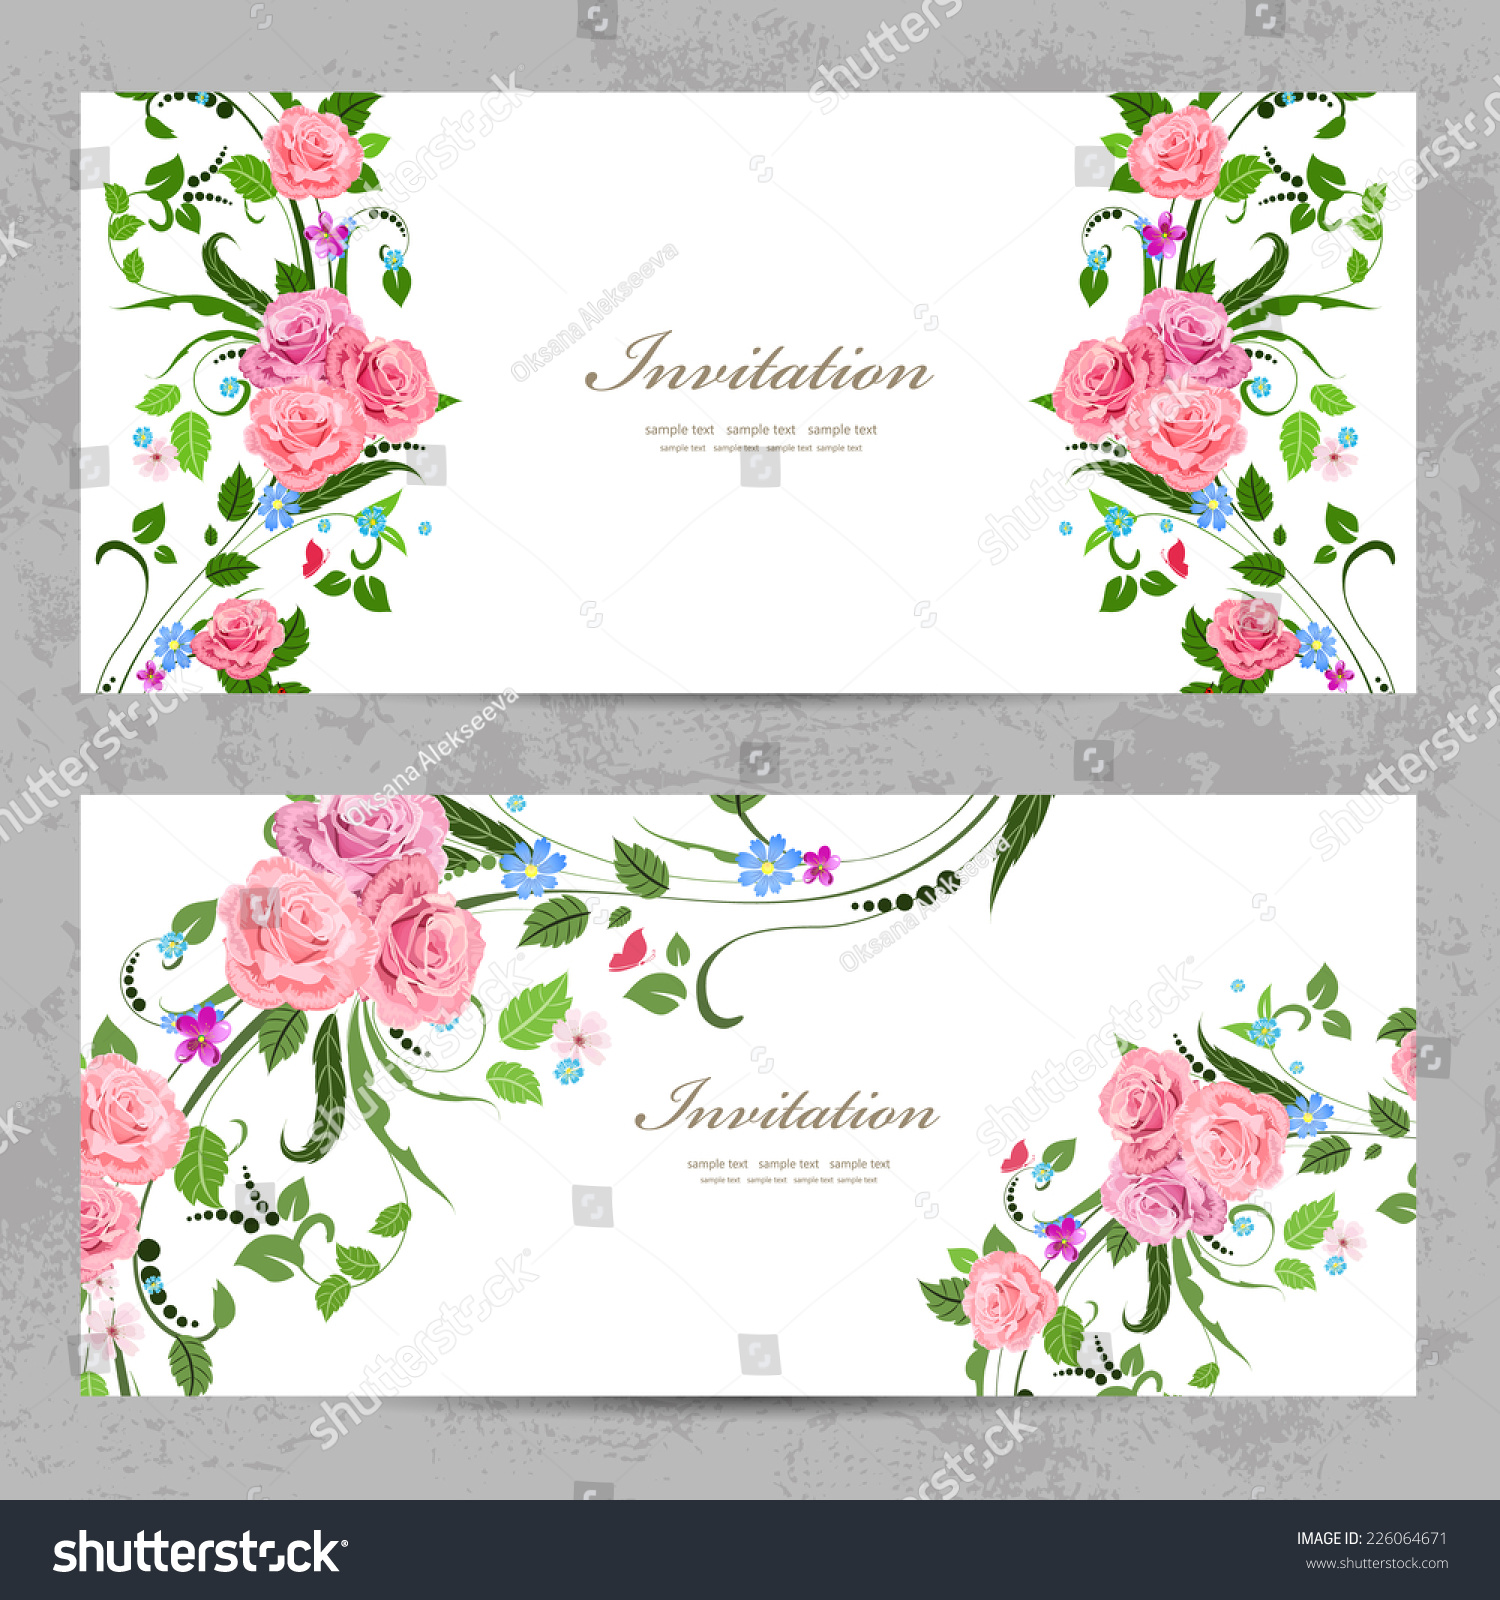 Invitation Cards With Beautiful Flowers For Your Design Ez Canvas